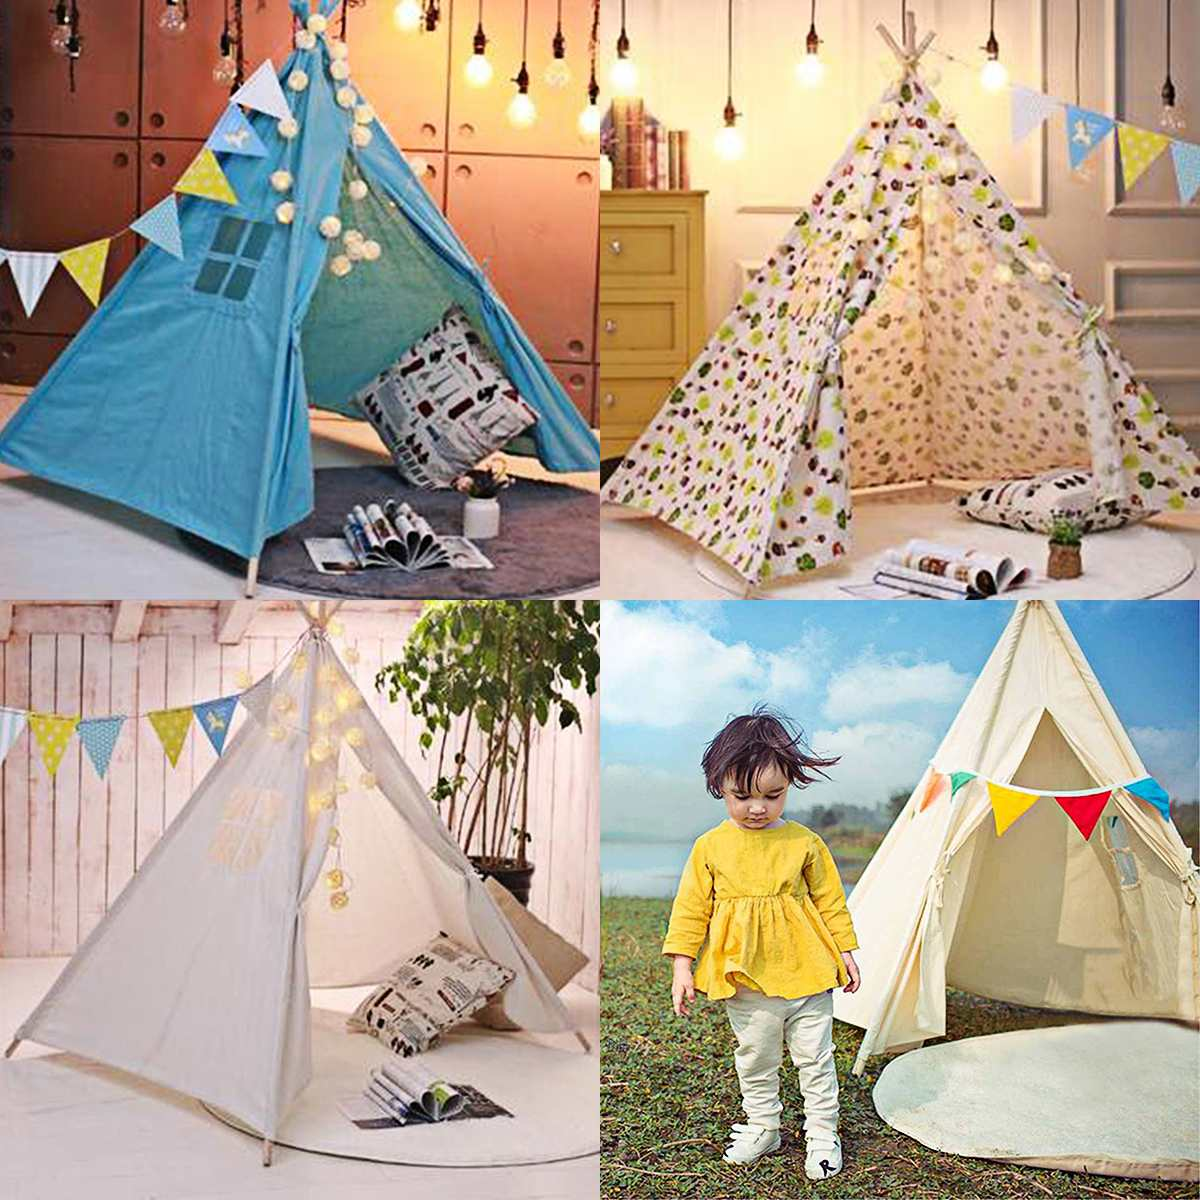 130cm/160cm/180cm Teepee Large Cotton Linen Kids Teepee Canvas Playhouse Indian Play Tent House White Children Tipi Tee Pee Tent(China)